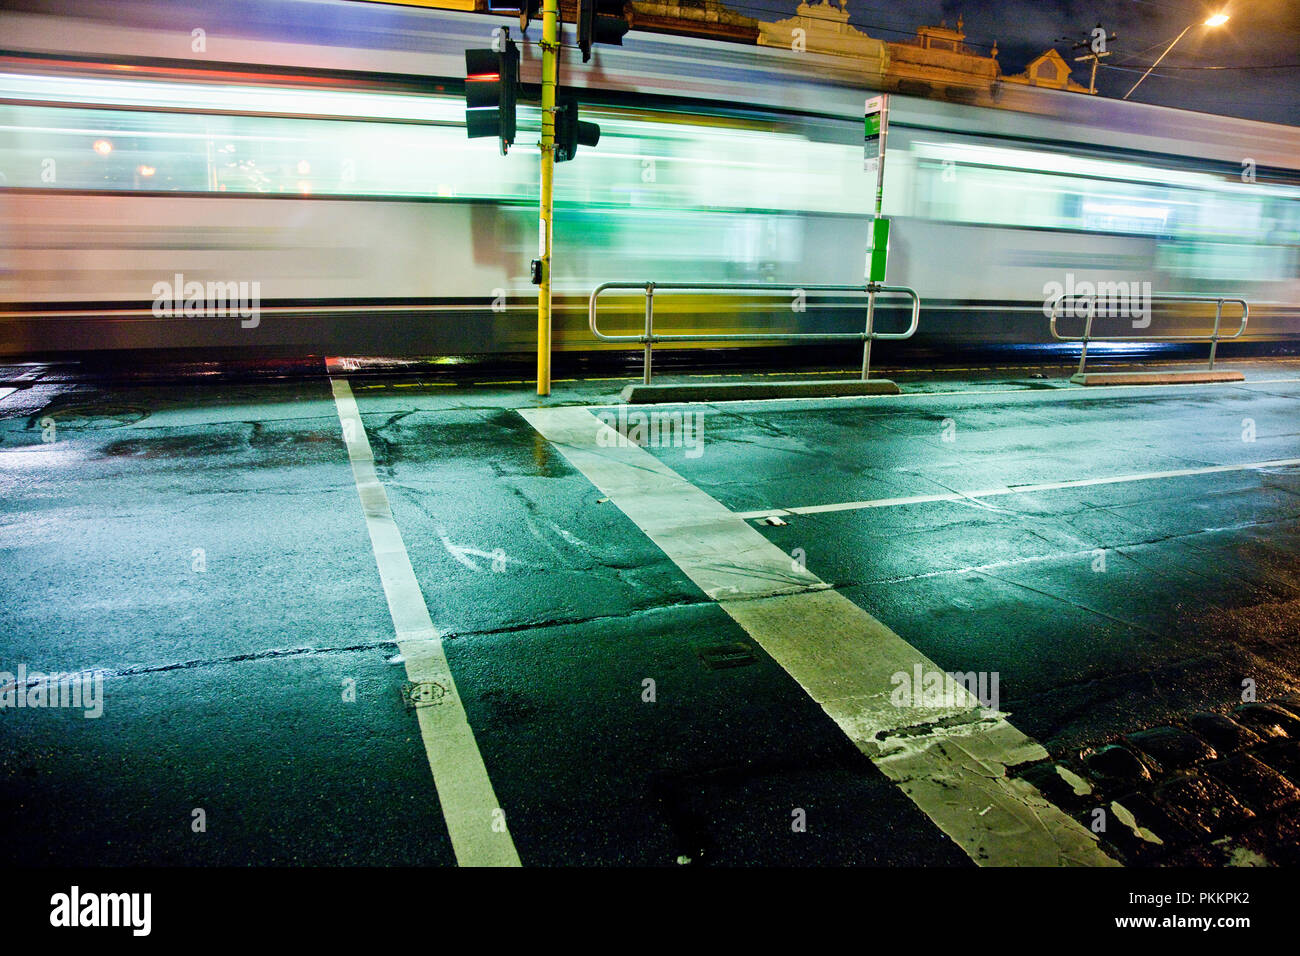 Tram passing down Lygon Street at night in Melbourne's inner northern suburb of Carlton. - Stock Image